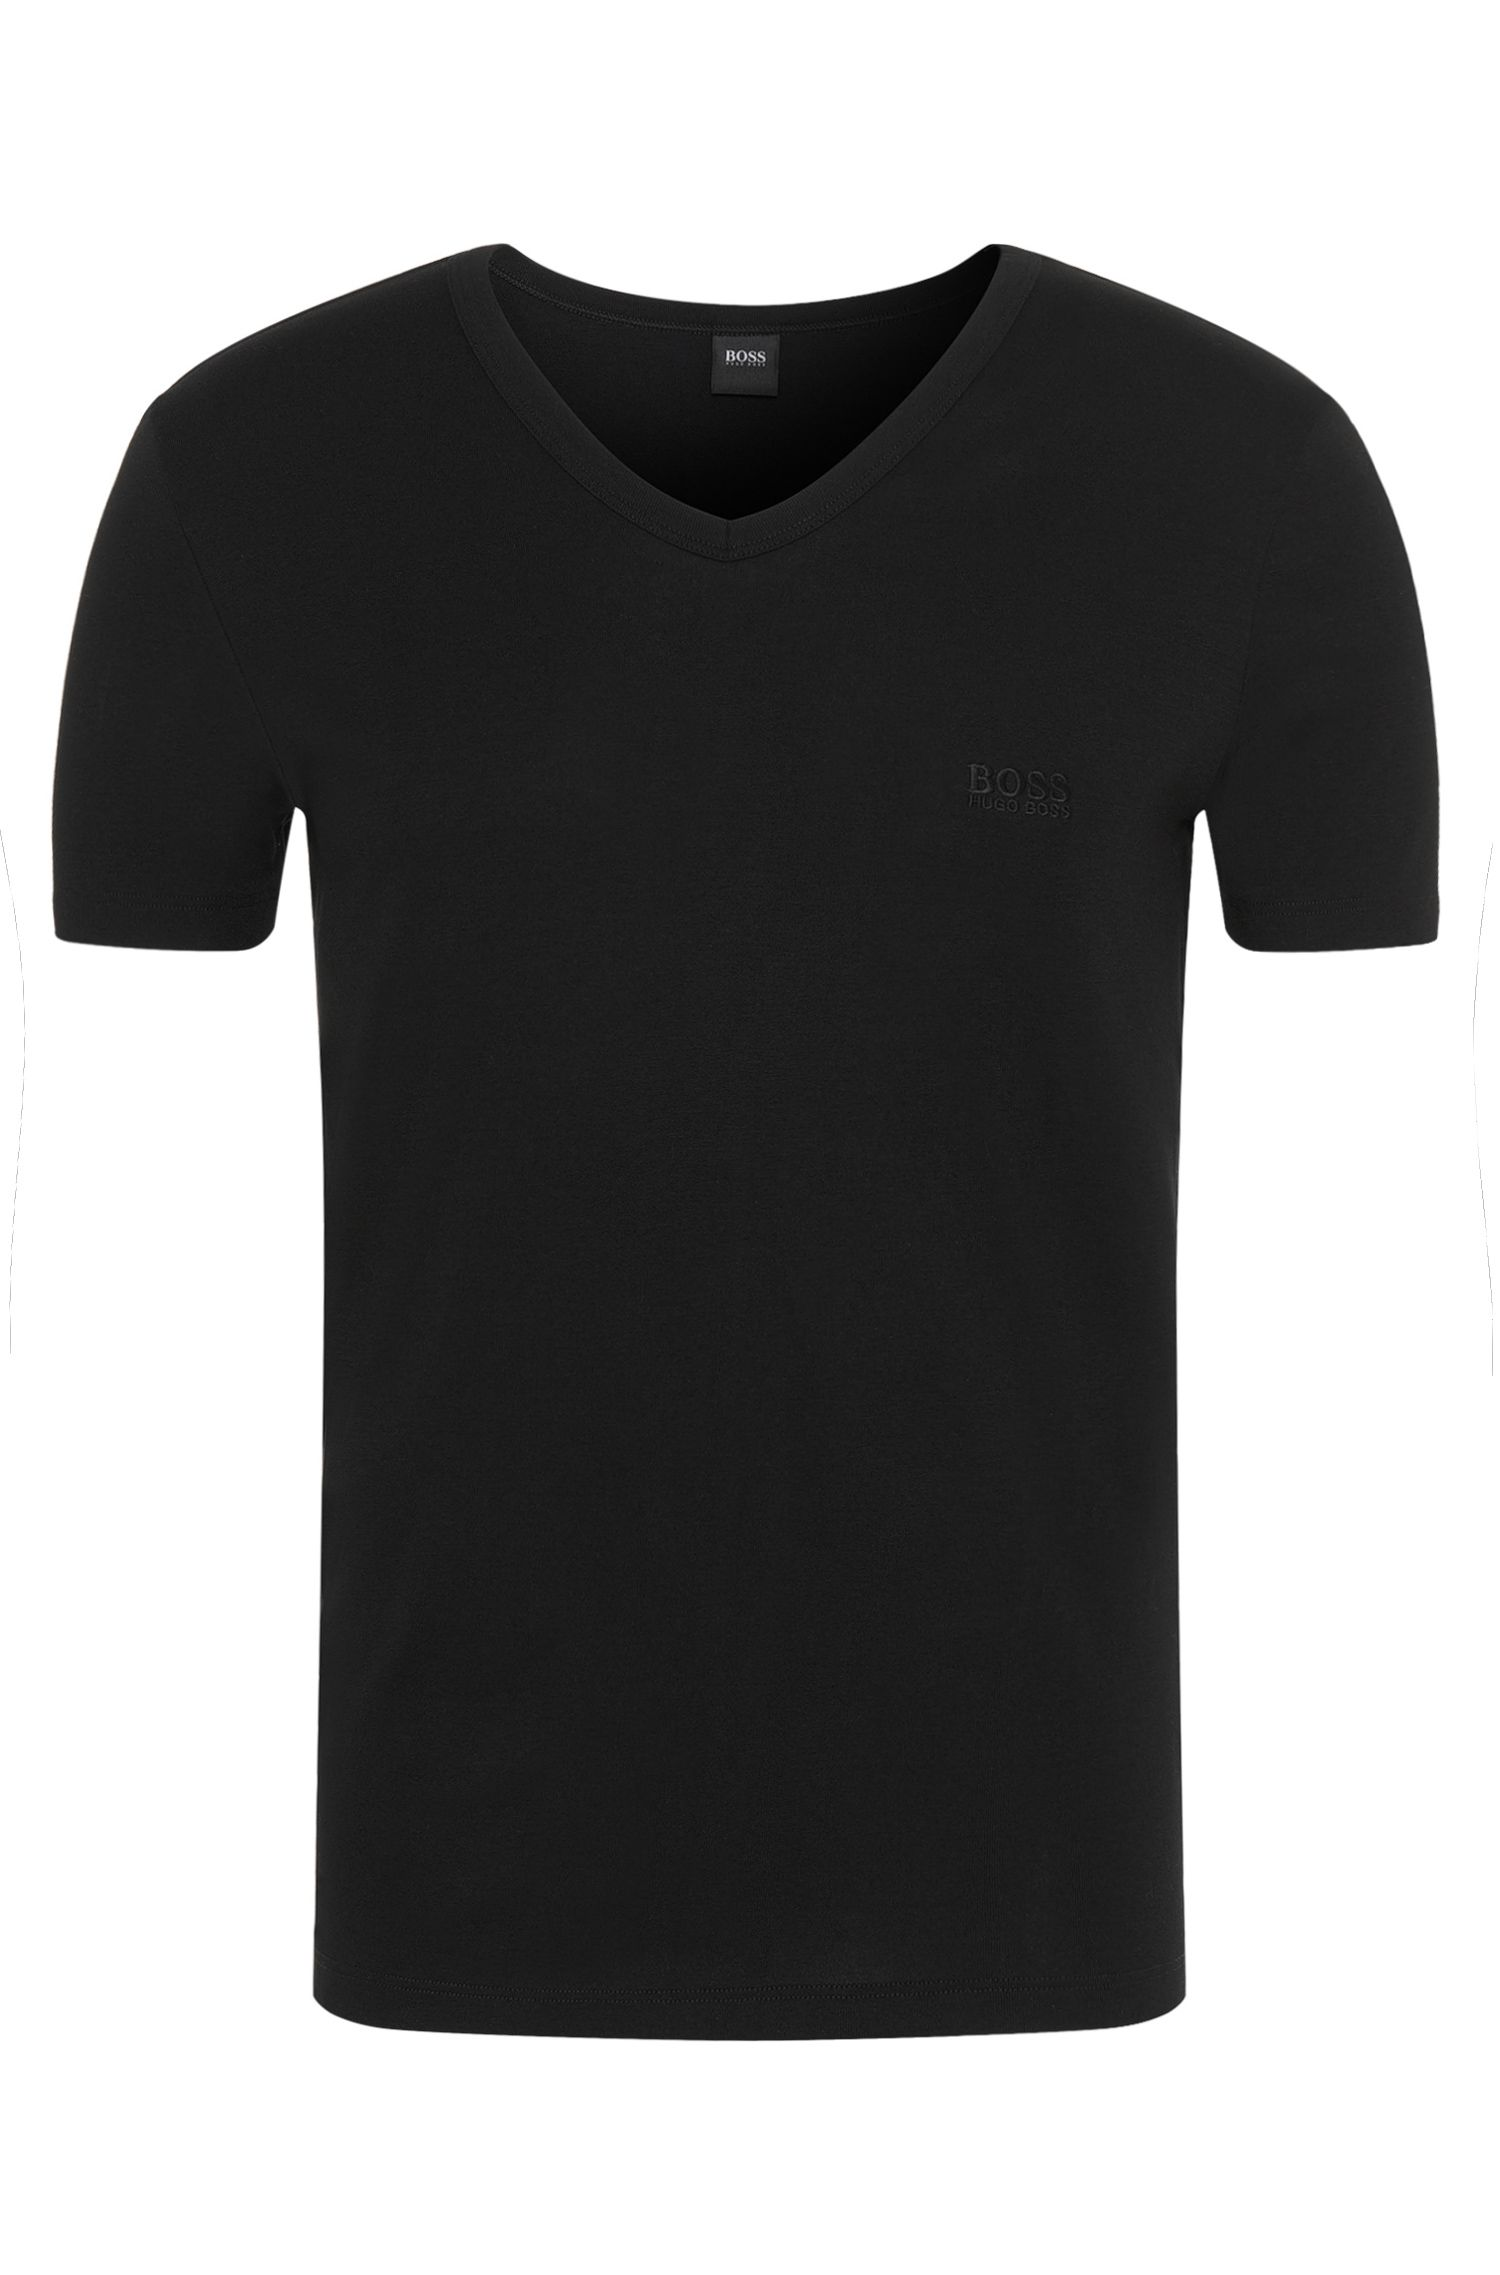 Regular-fit T-shirt in cotton